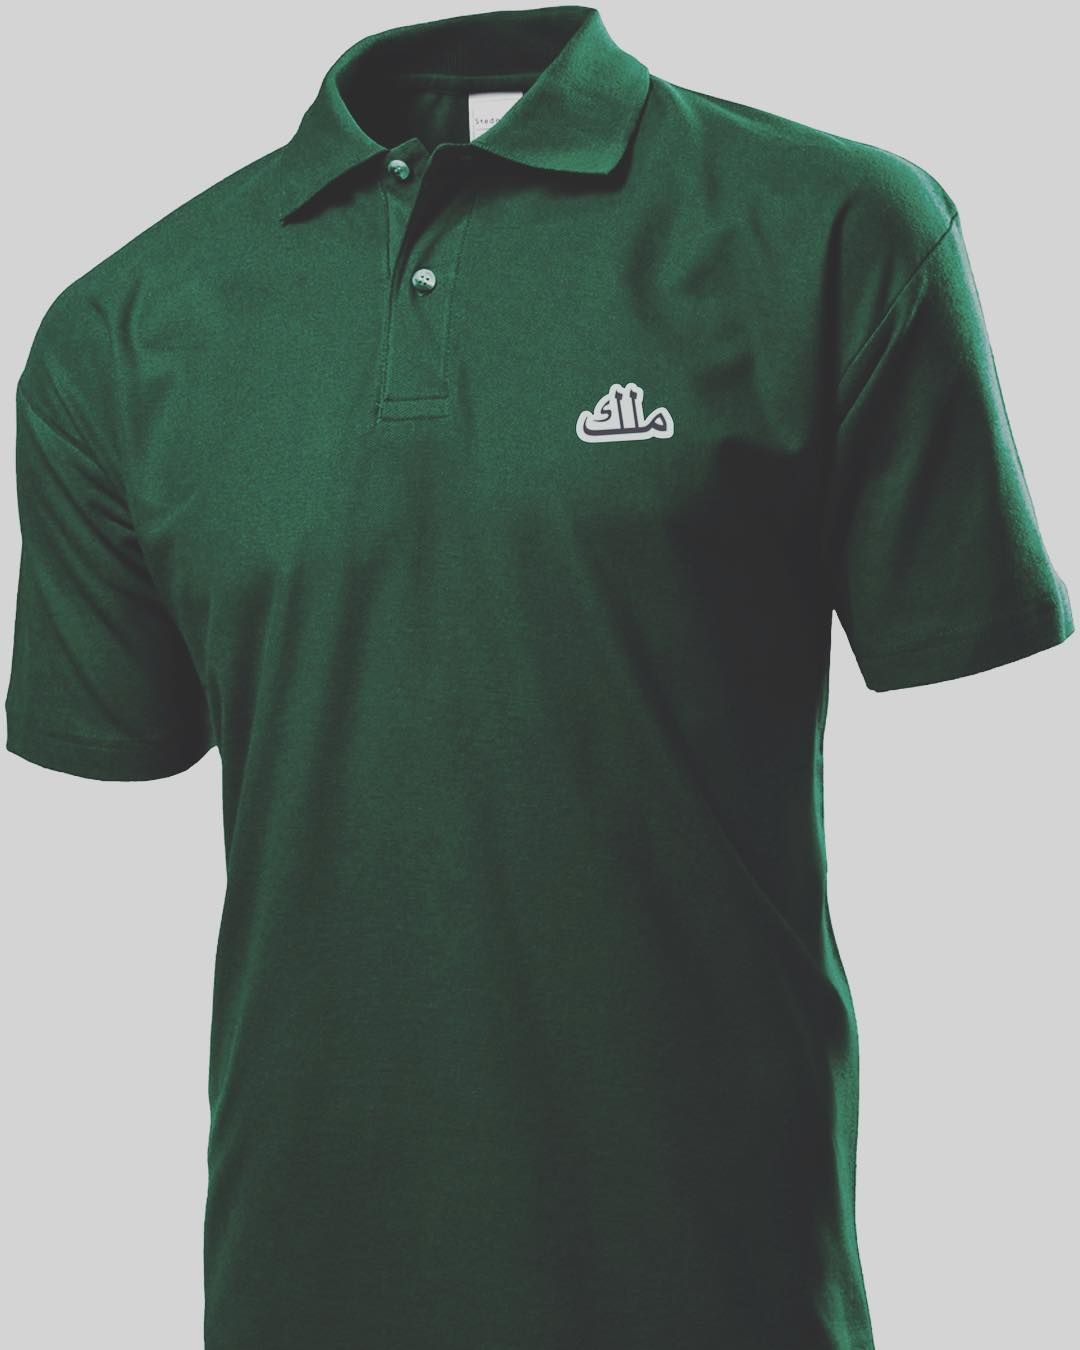 Green t shirt dress outfit  Green Poloshirt from REX WEAR  Be a King Dress like one  Outfit